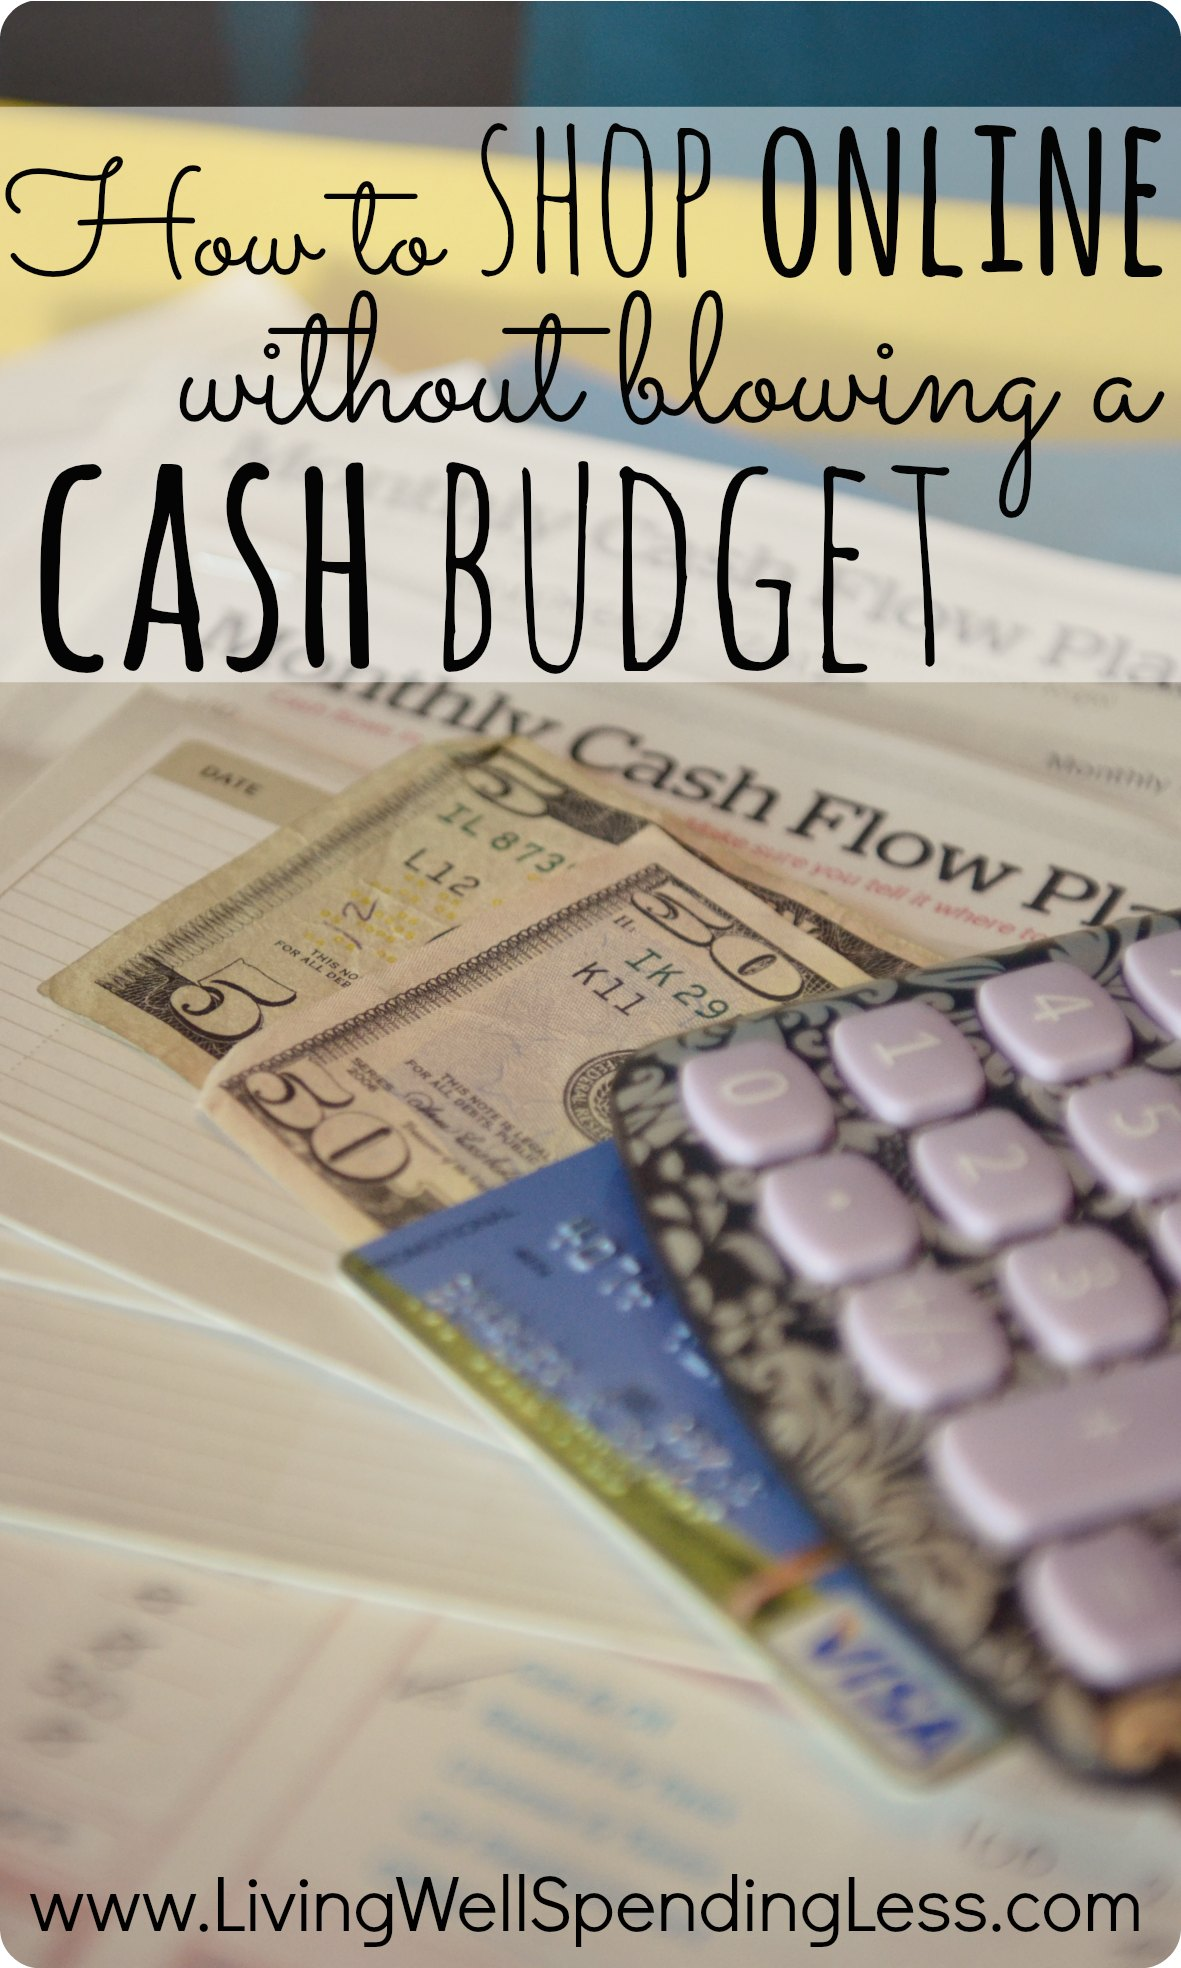 Cash vs credit how to shop online without blowing a cash budget living well spending less - Shopping cash card paying spending ...